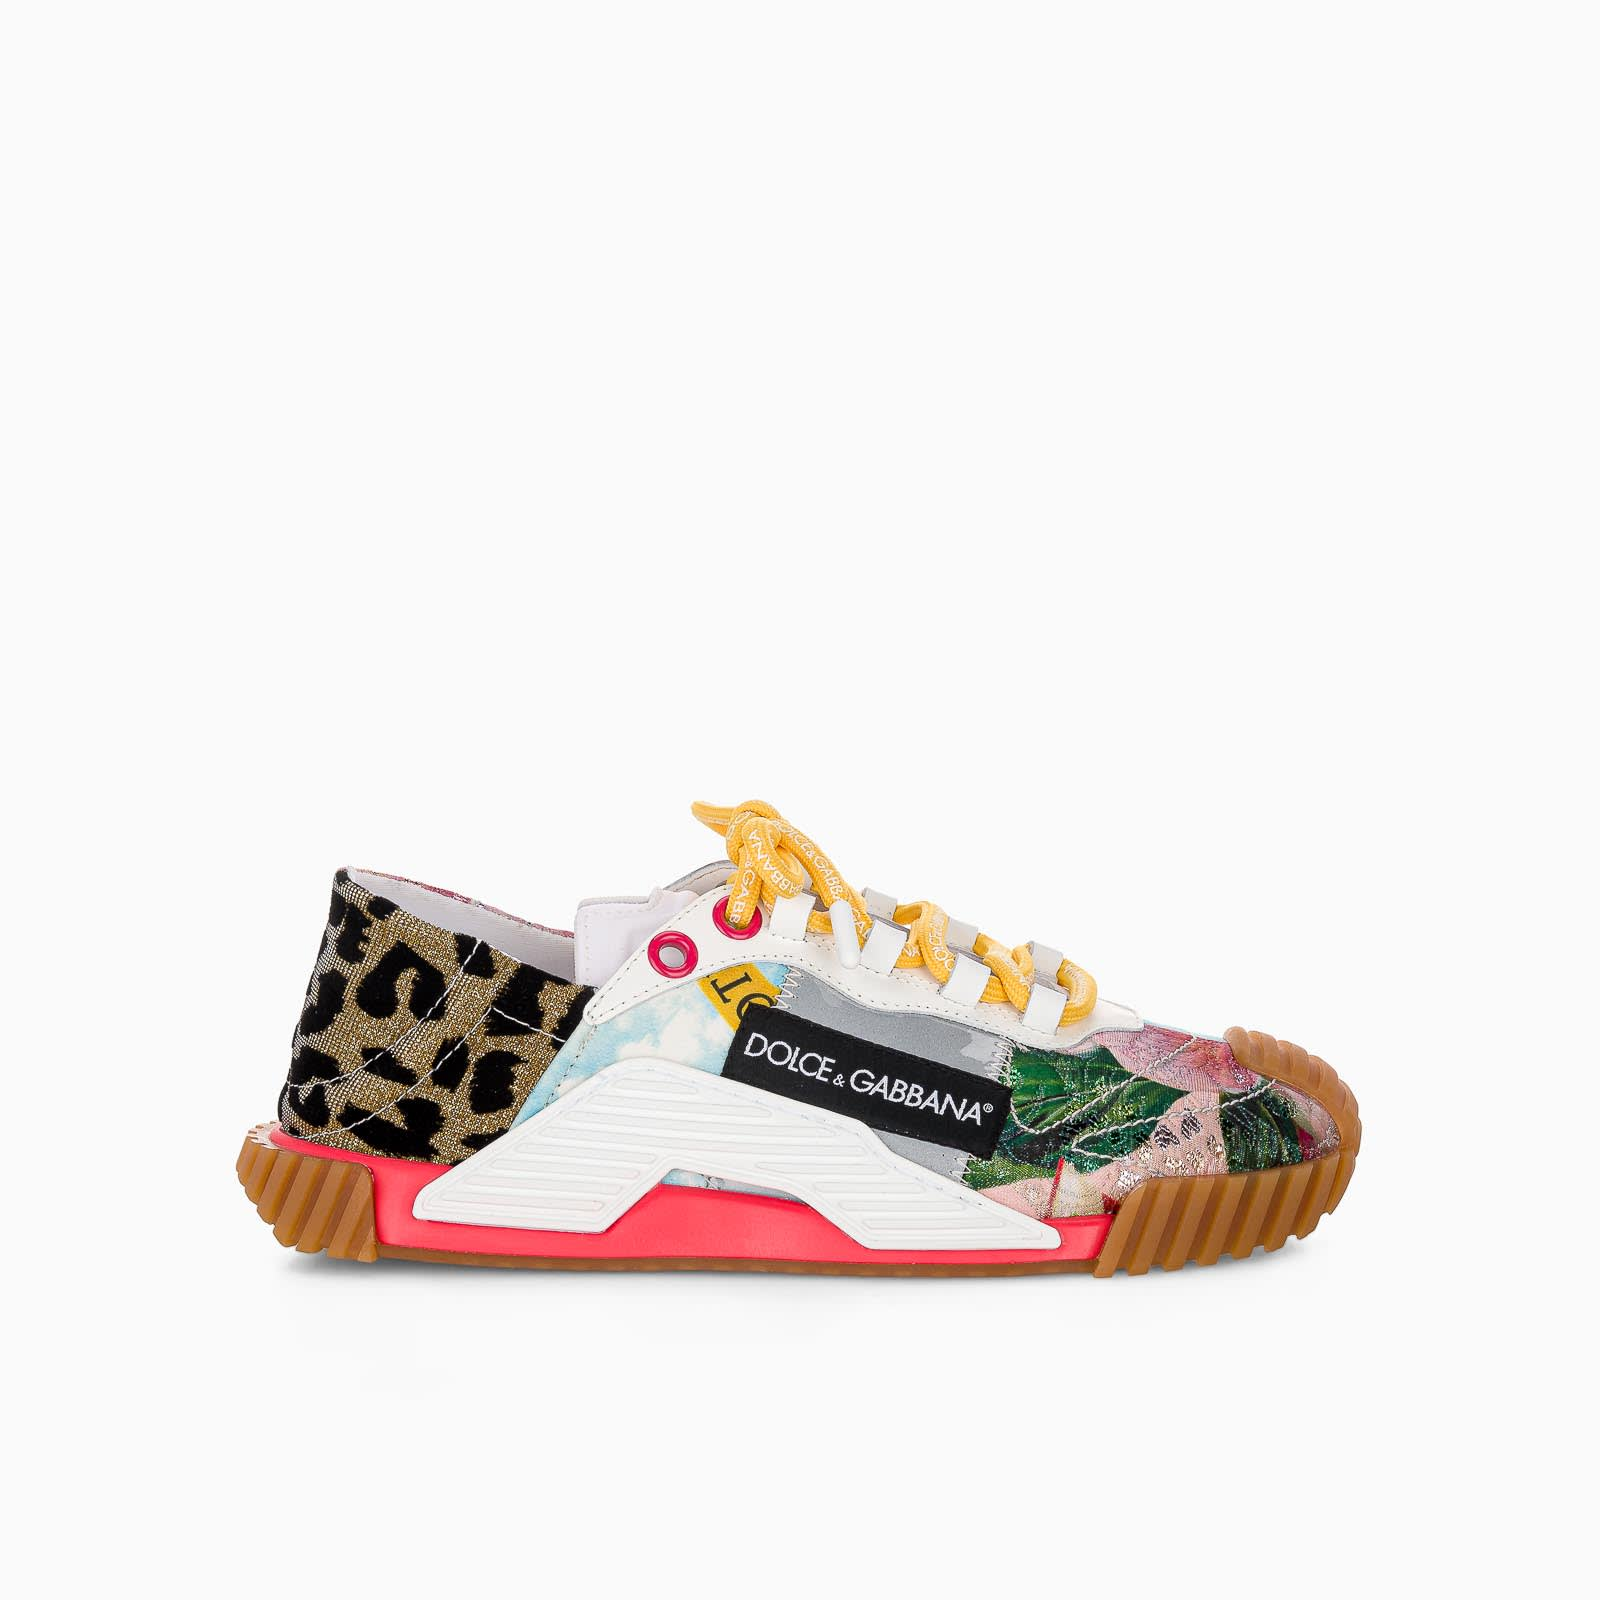 Buy Dolce & Gabbana Dolce & gabbana Patchwork Fabric Ns1 Slip-on Sneakers online, shop Dolce & Gabbana shoes with free shipping